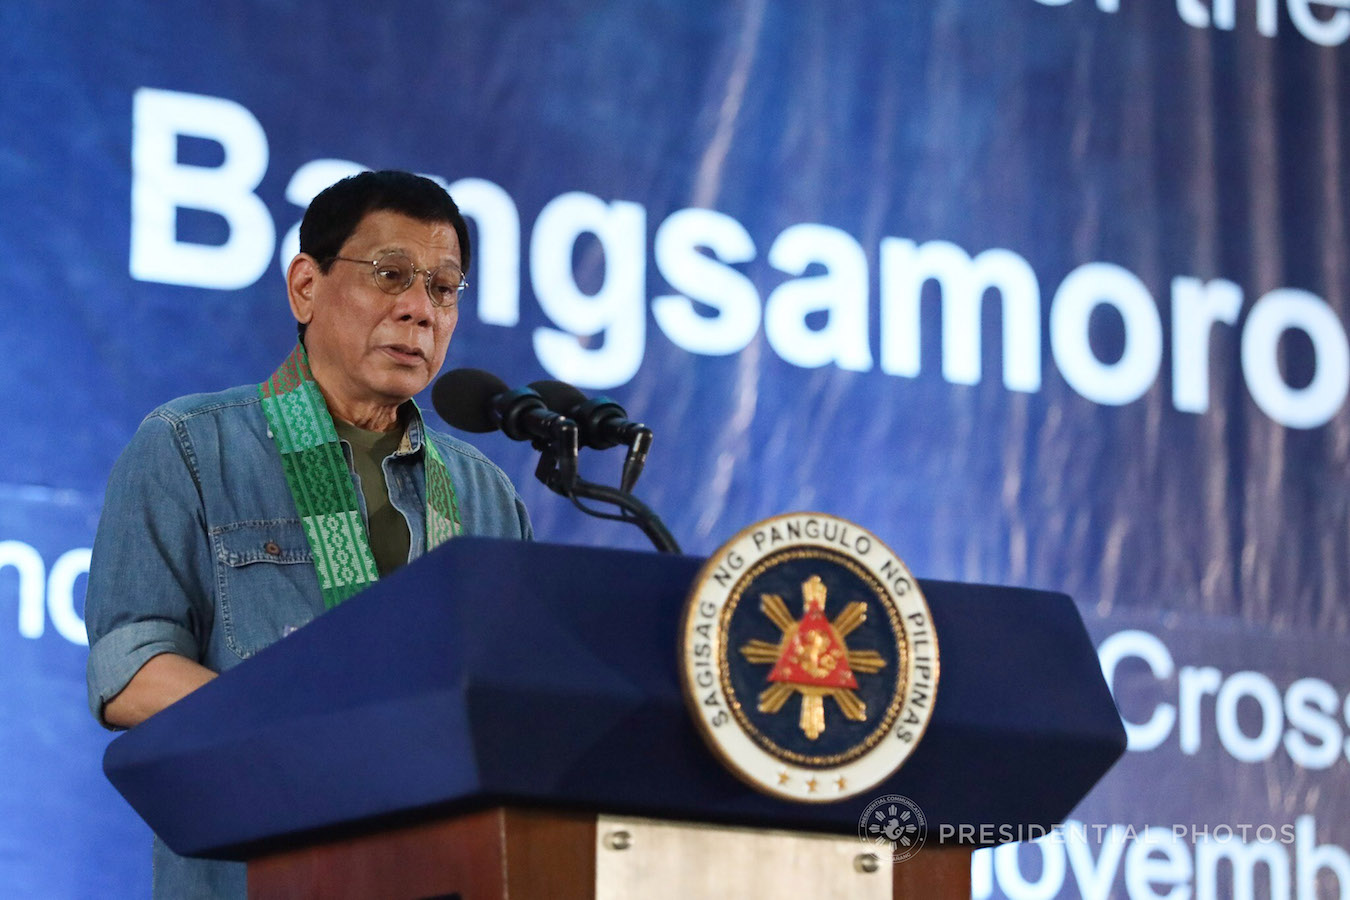 President Rodrigo Roa Duterte, in his speech during the Bangsamoro Assembly held at the Old Provincial Capital in Sultan Kudarat, Maguindanao on November 27, 2017, announces that he will ask Congress for a special session where Moros as well as Lumads can voice out their concerns on how the historical injustices committed against them would be addressed. ROBINSON NIÑAL JR./PRESIDENTIAL PHOTO